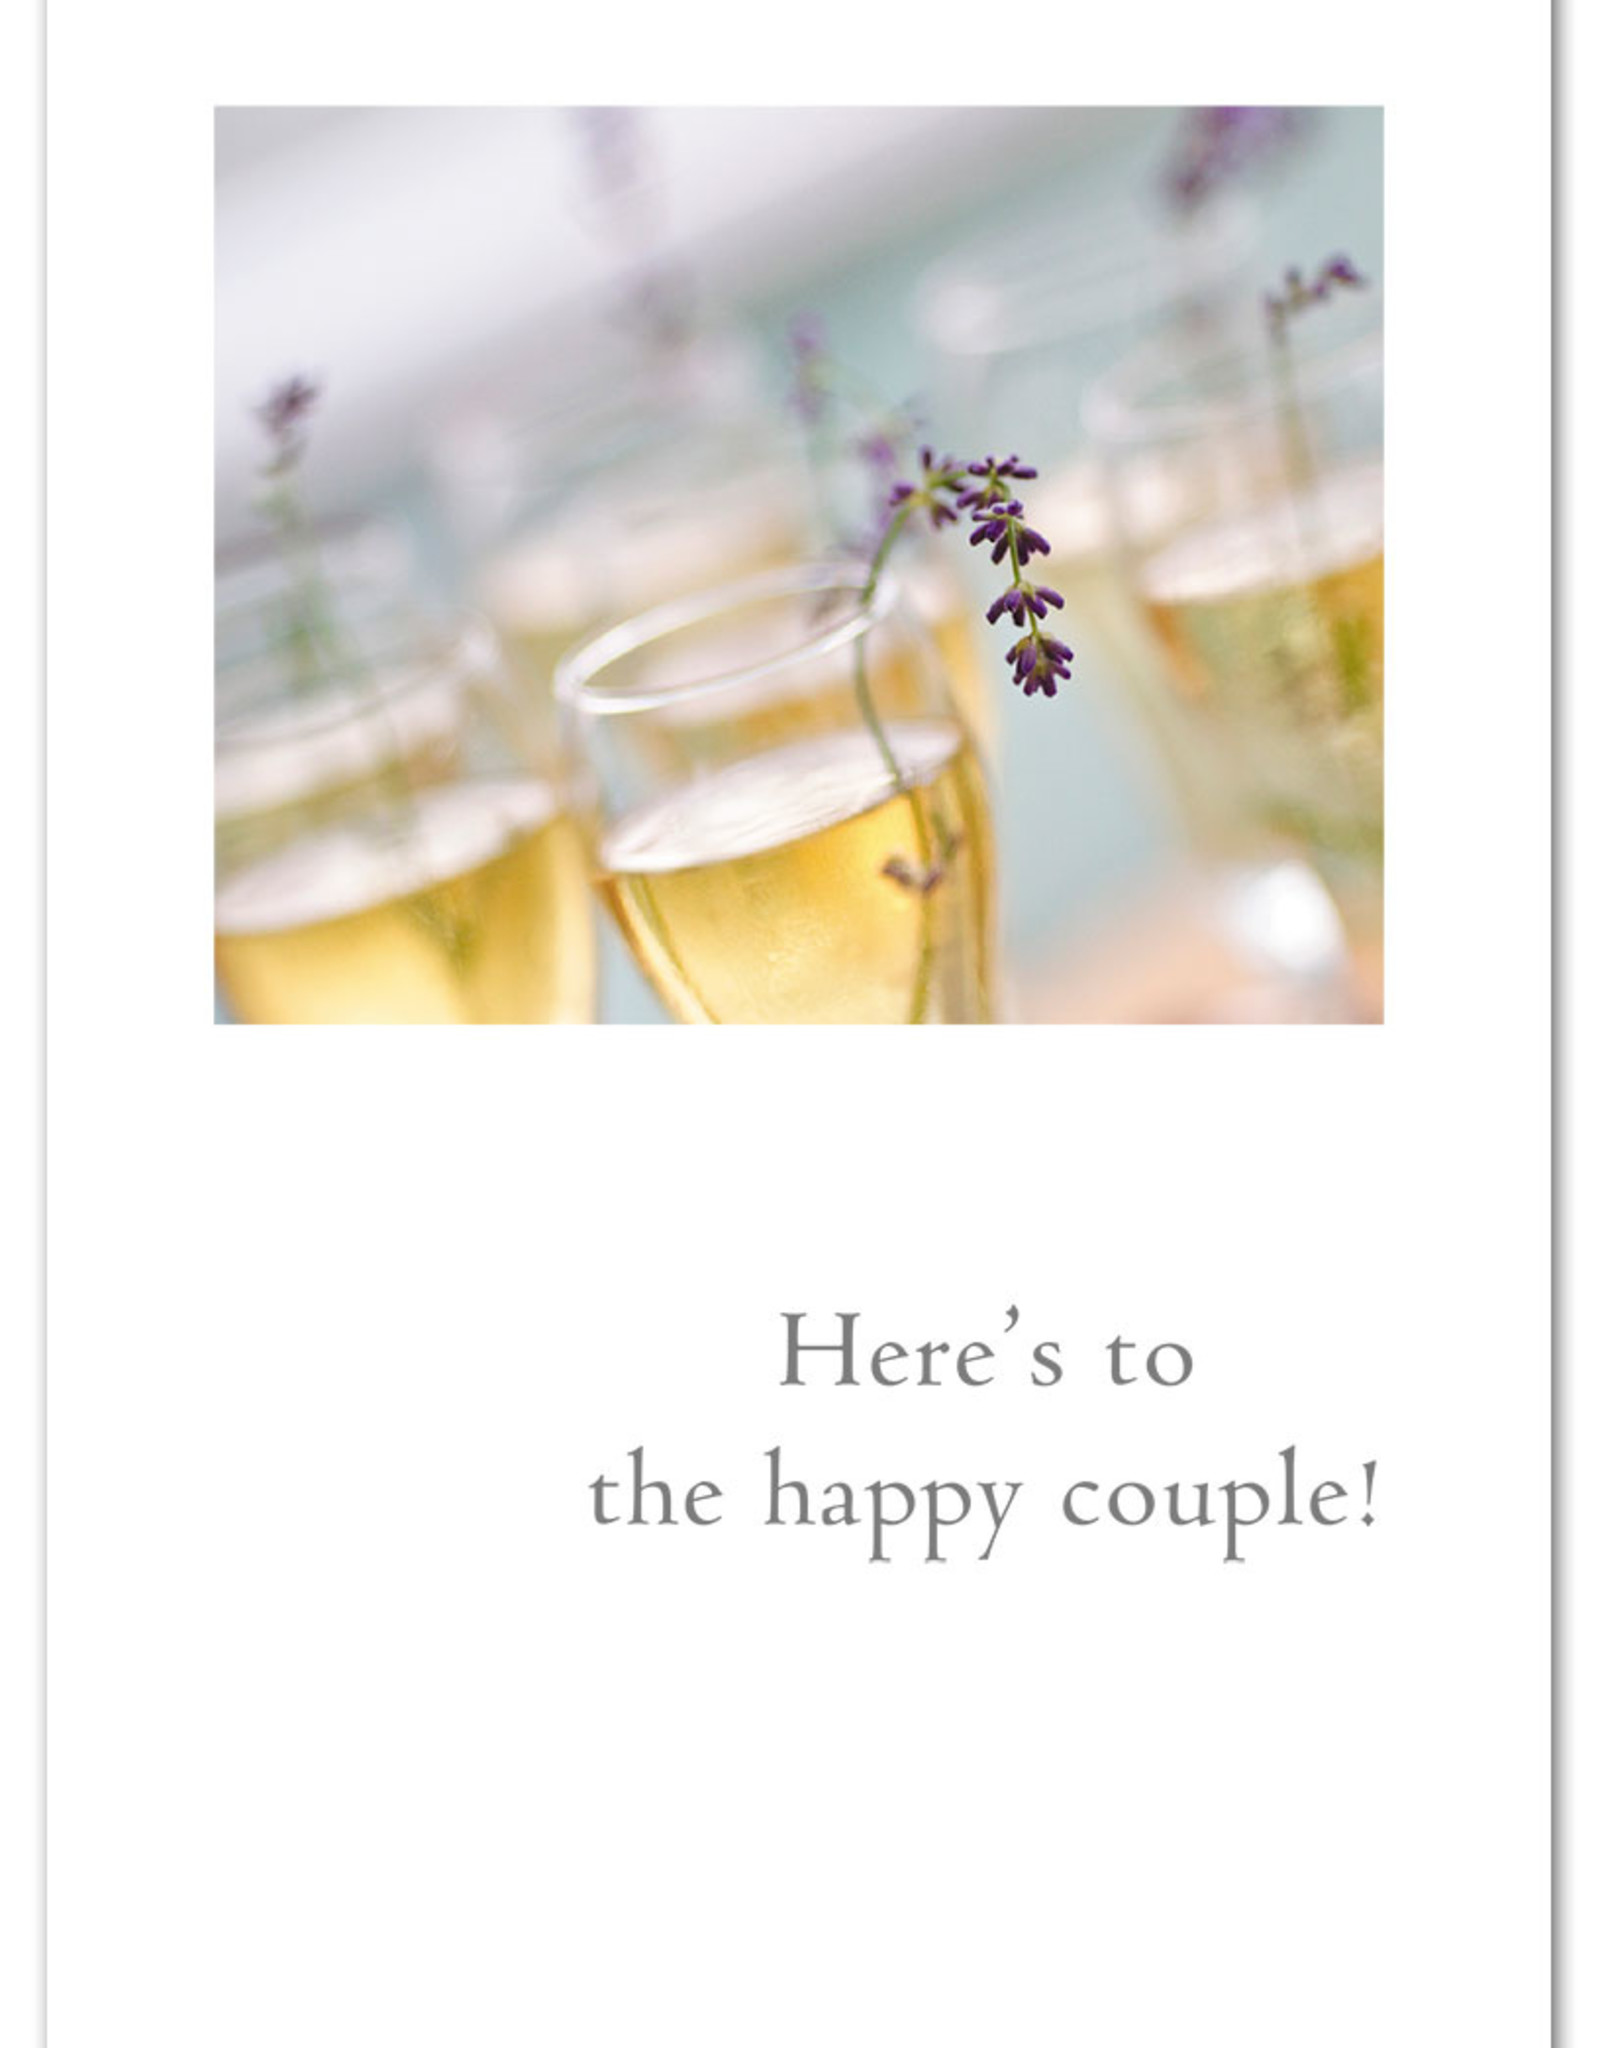 Cardthartic Cardthartic - Champagne & Lavender Wedding Card